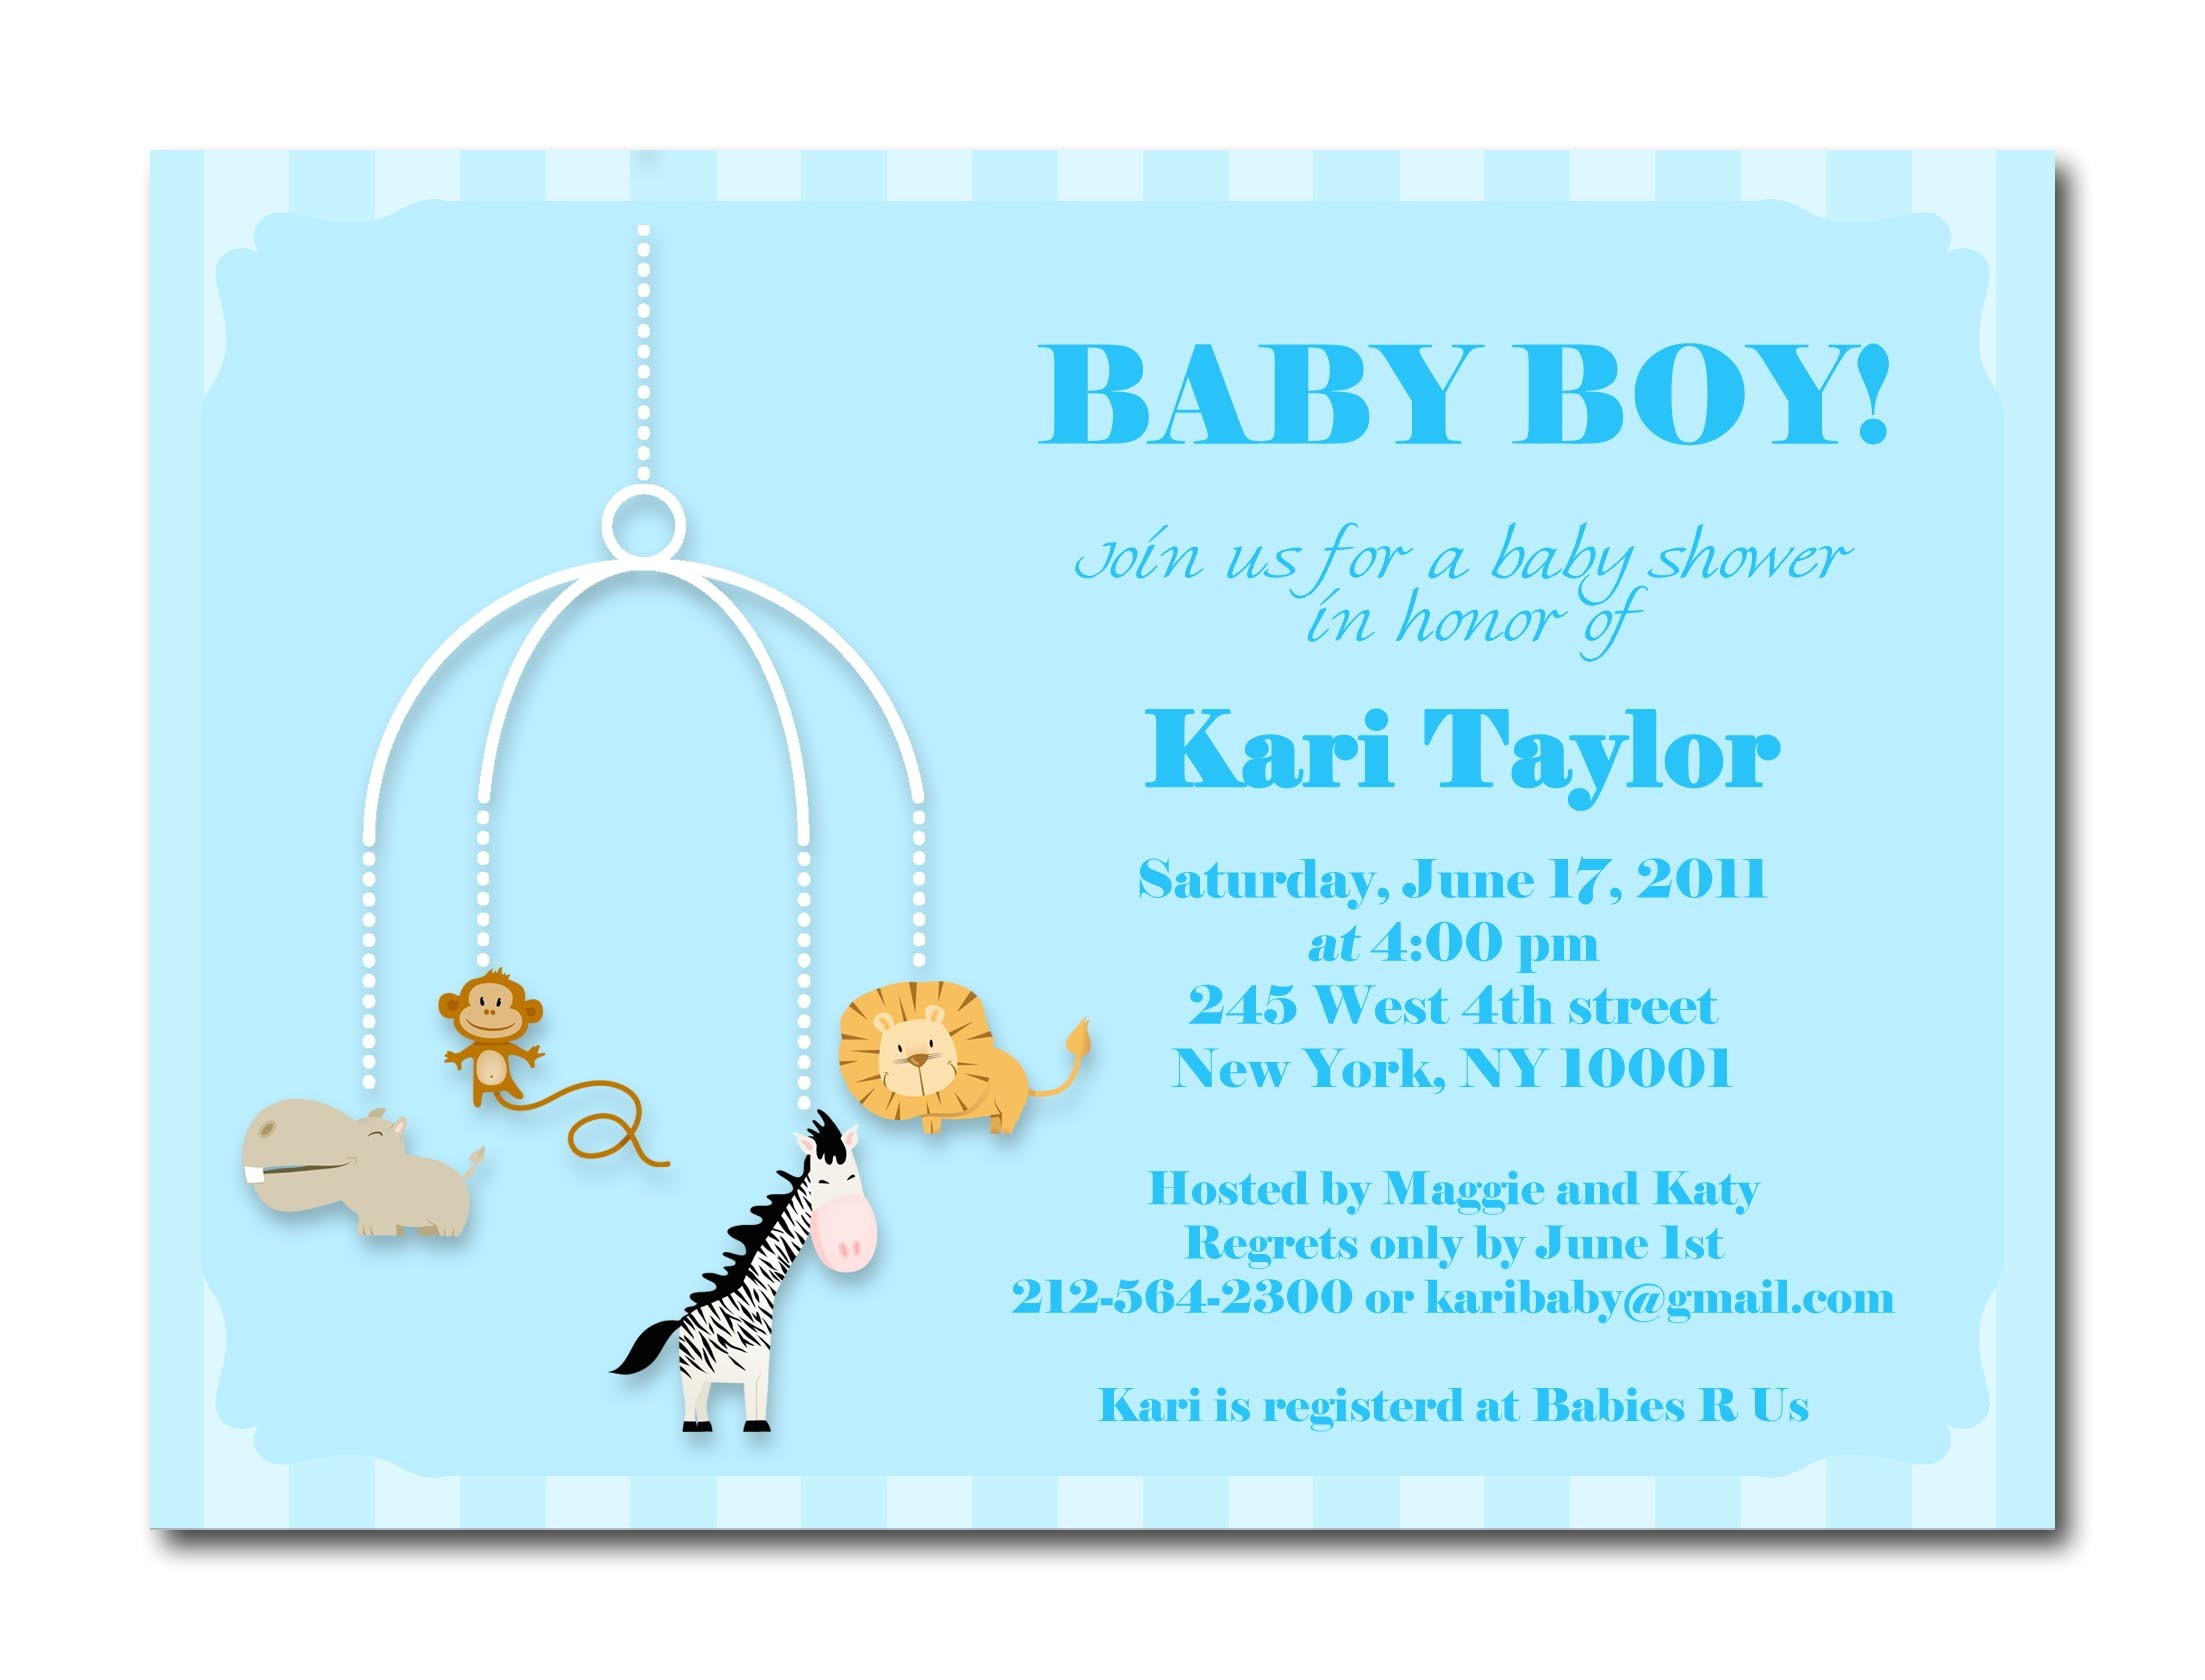 Baby Shower Invitation Details Baby Boy Shower Invites